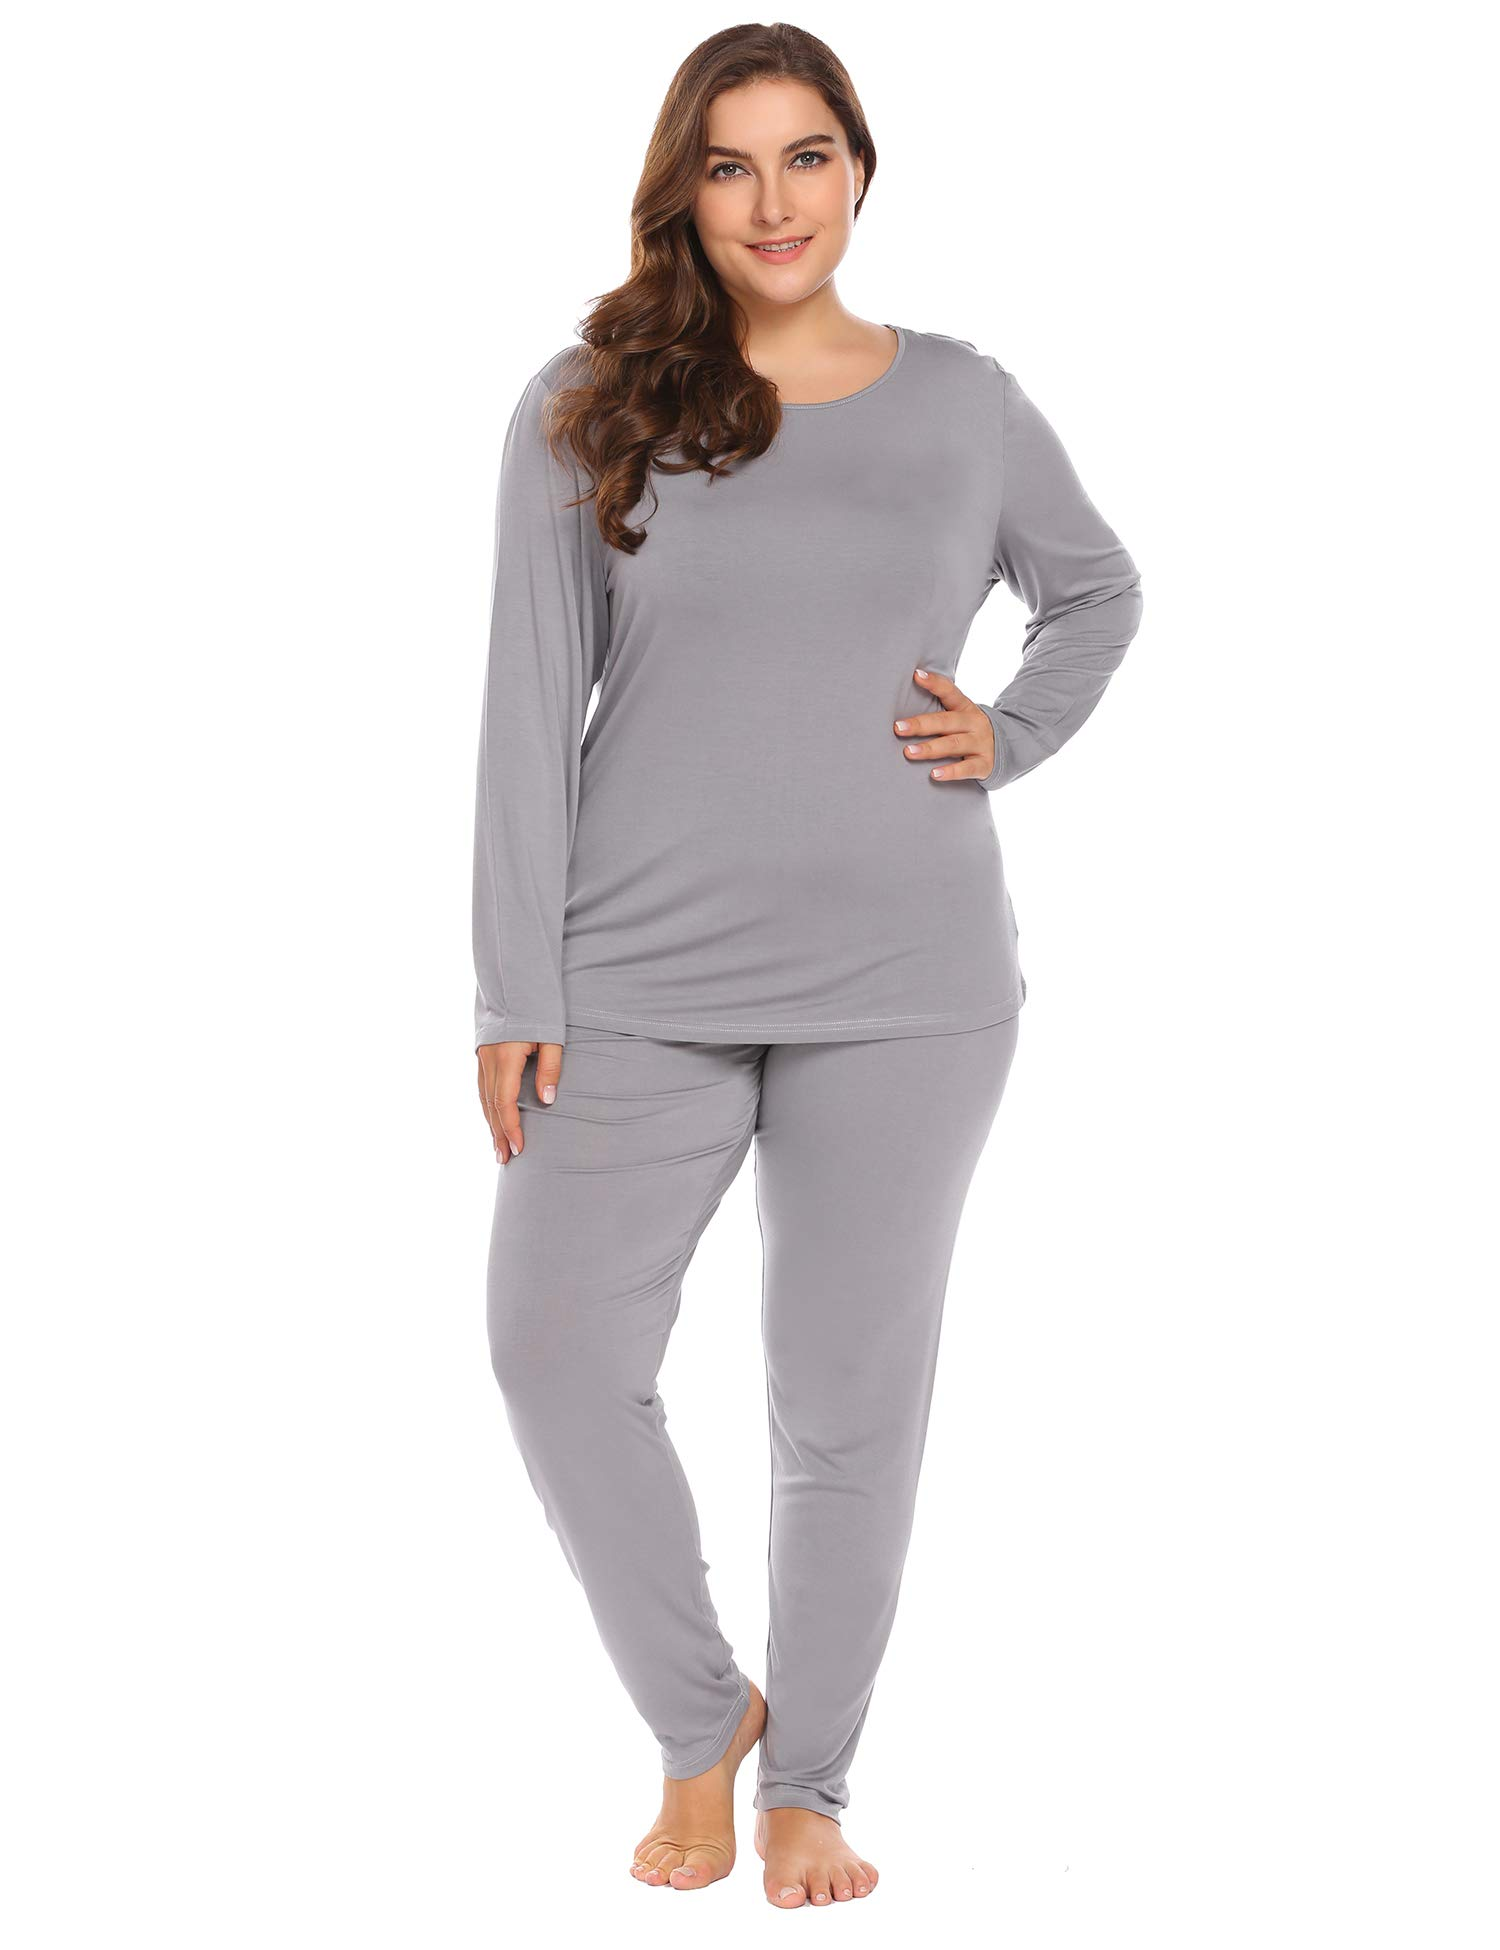 Women's Plus Size Thermal Long Johns Sets 2 Pcs Underwear Top & Bottom Pajama XL-6XL